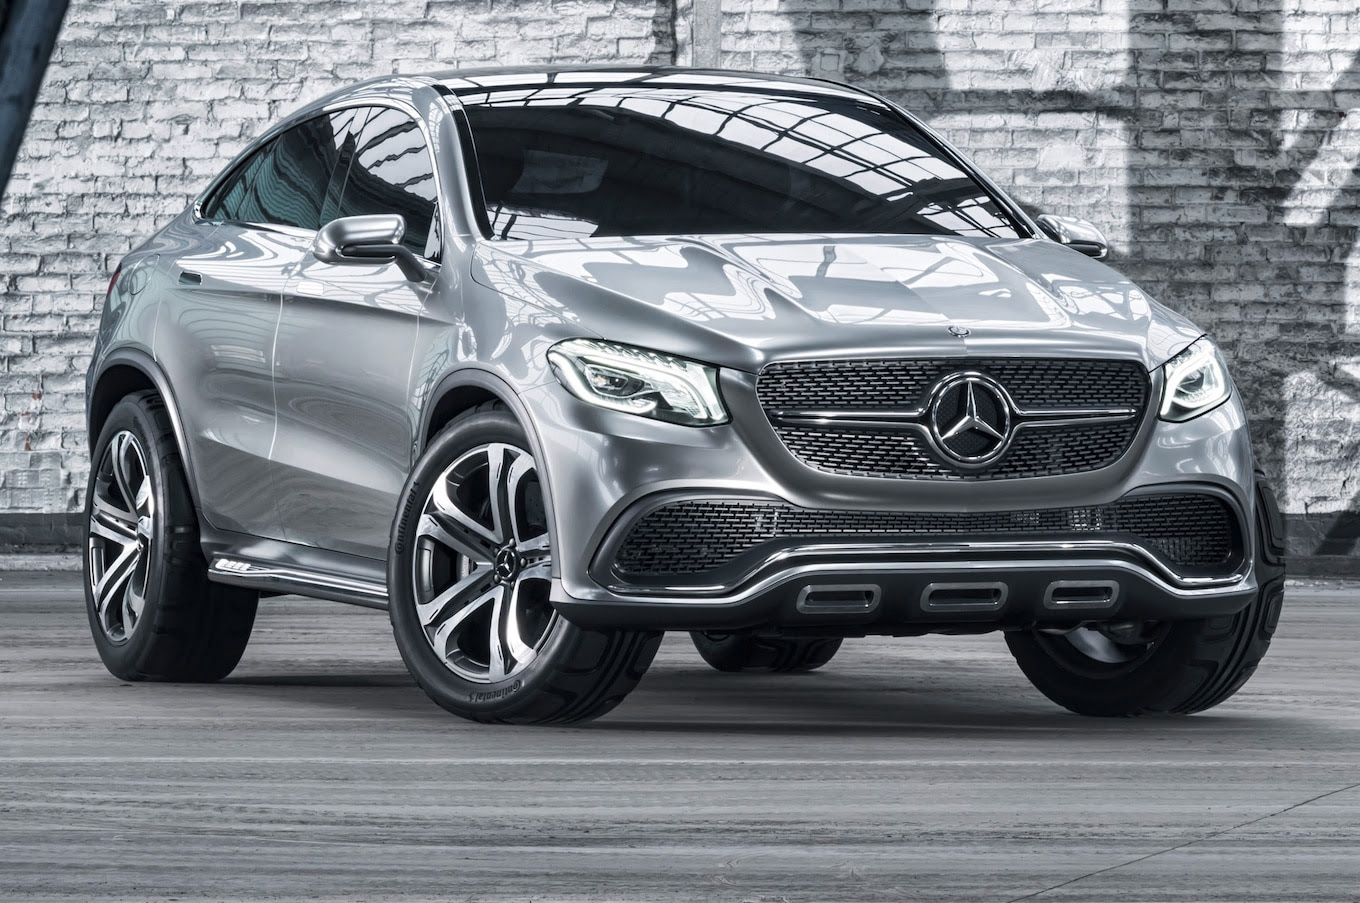 Mercedes-Benz Concept Coupe SUV First Look - Motor Trend